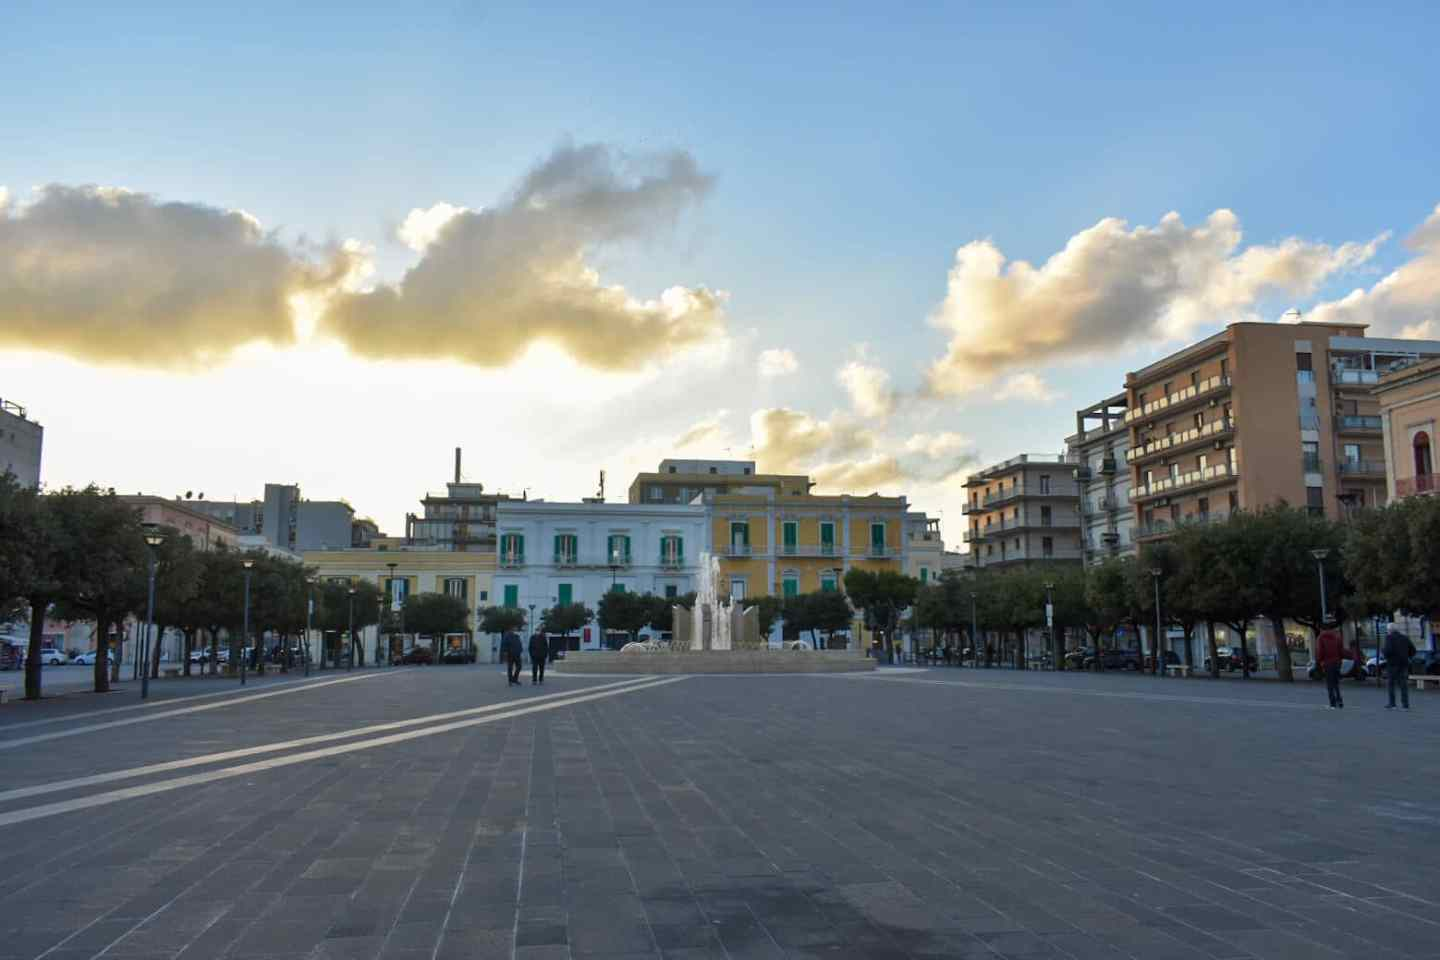 The main square of Monopoli Italy at sunset